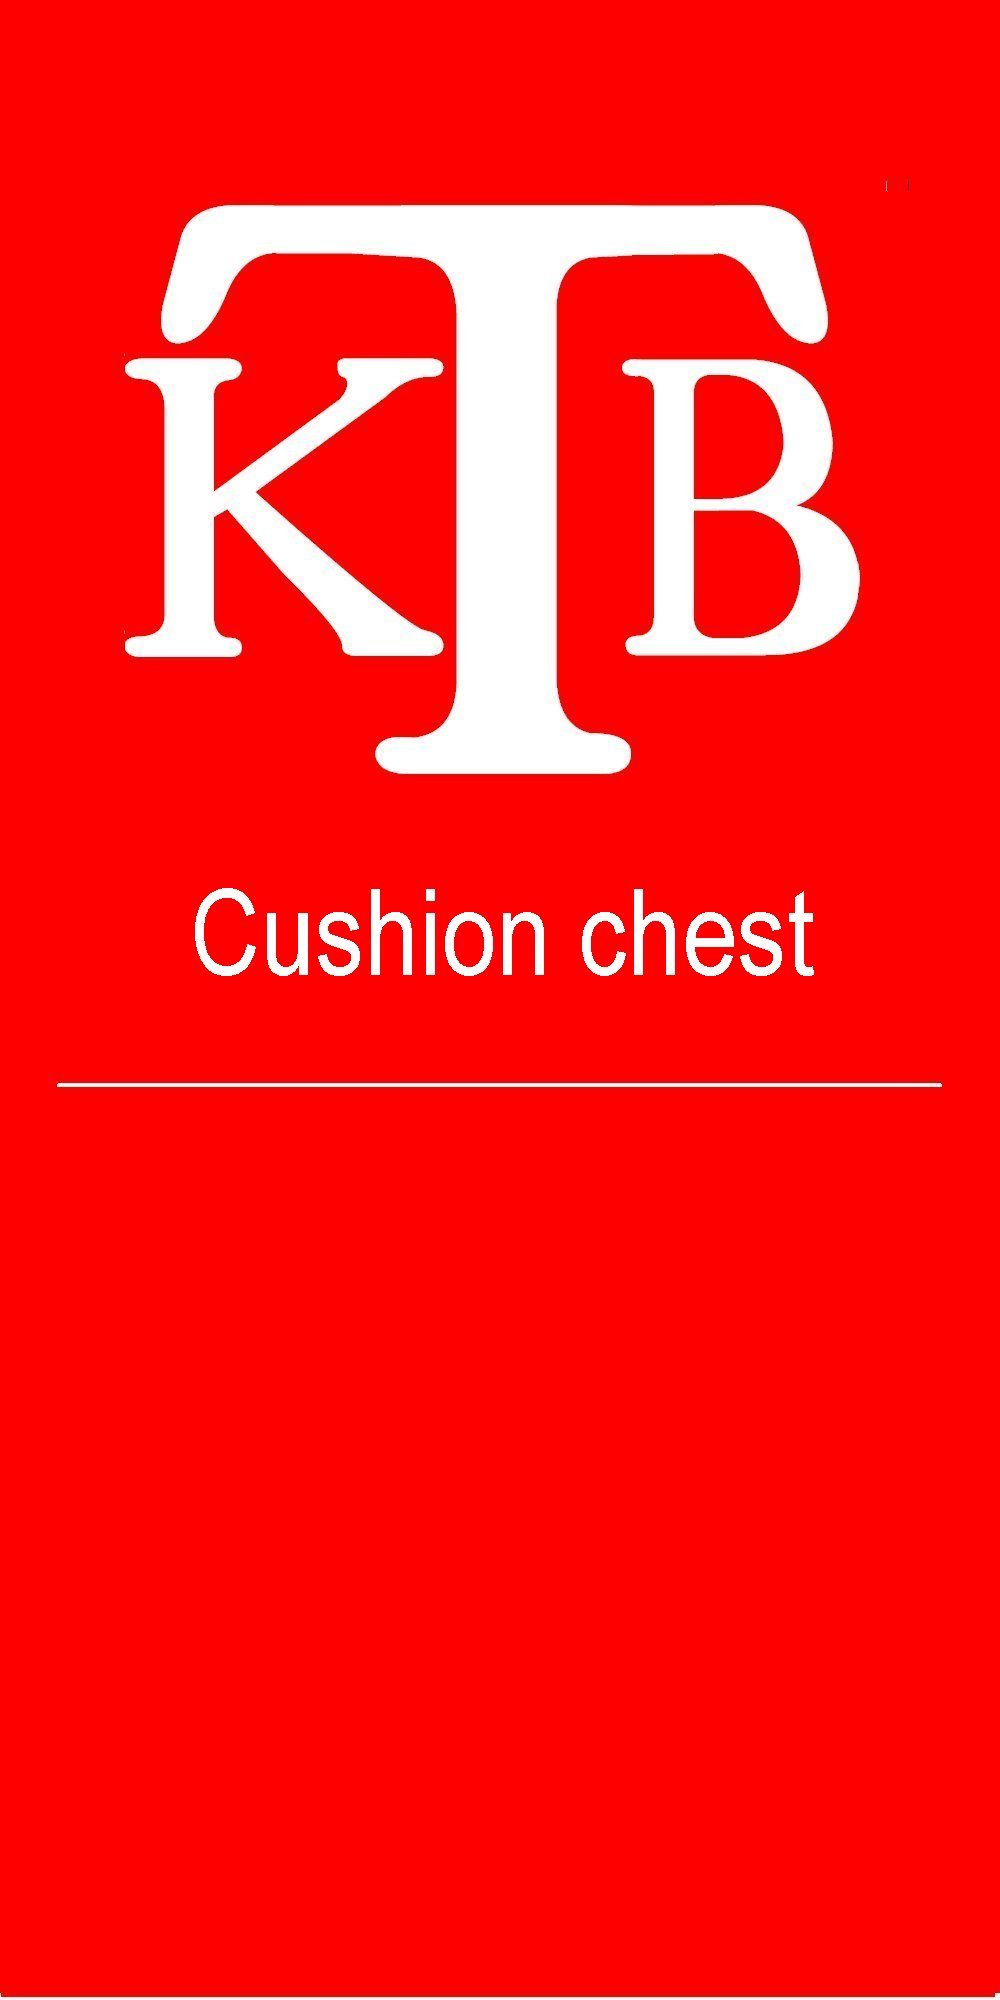 Logo Cushion Chest